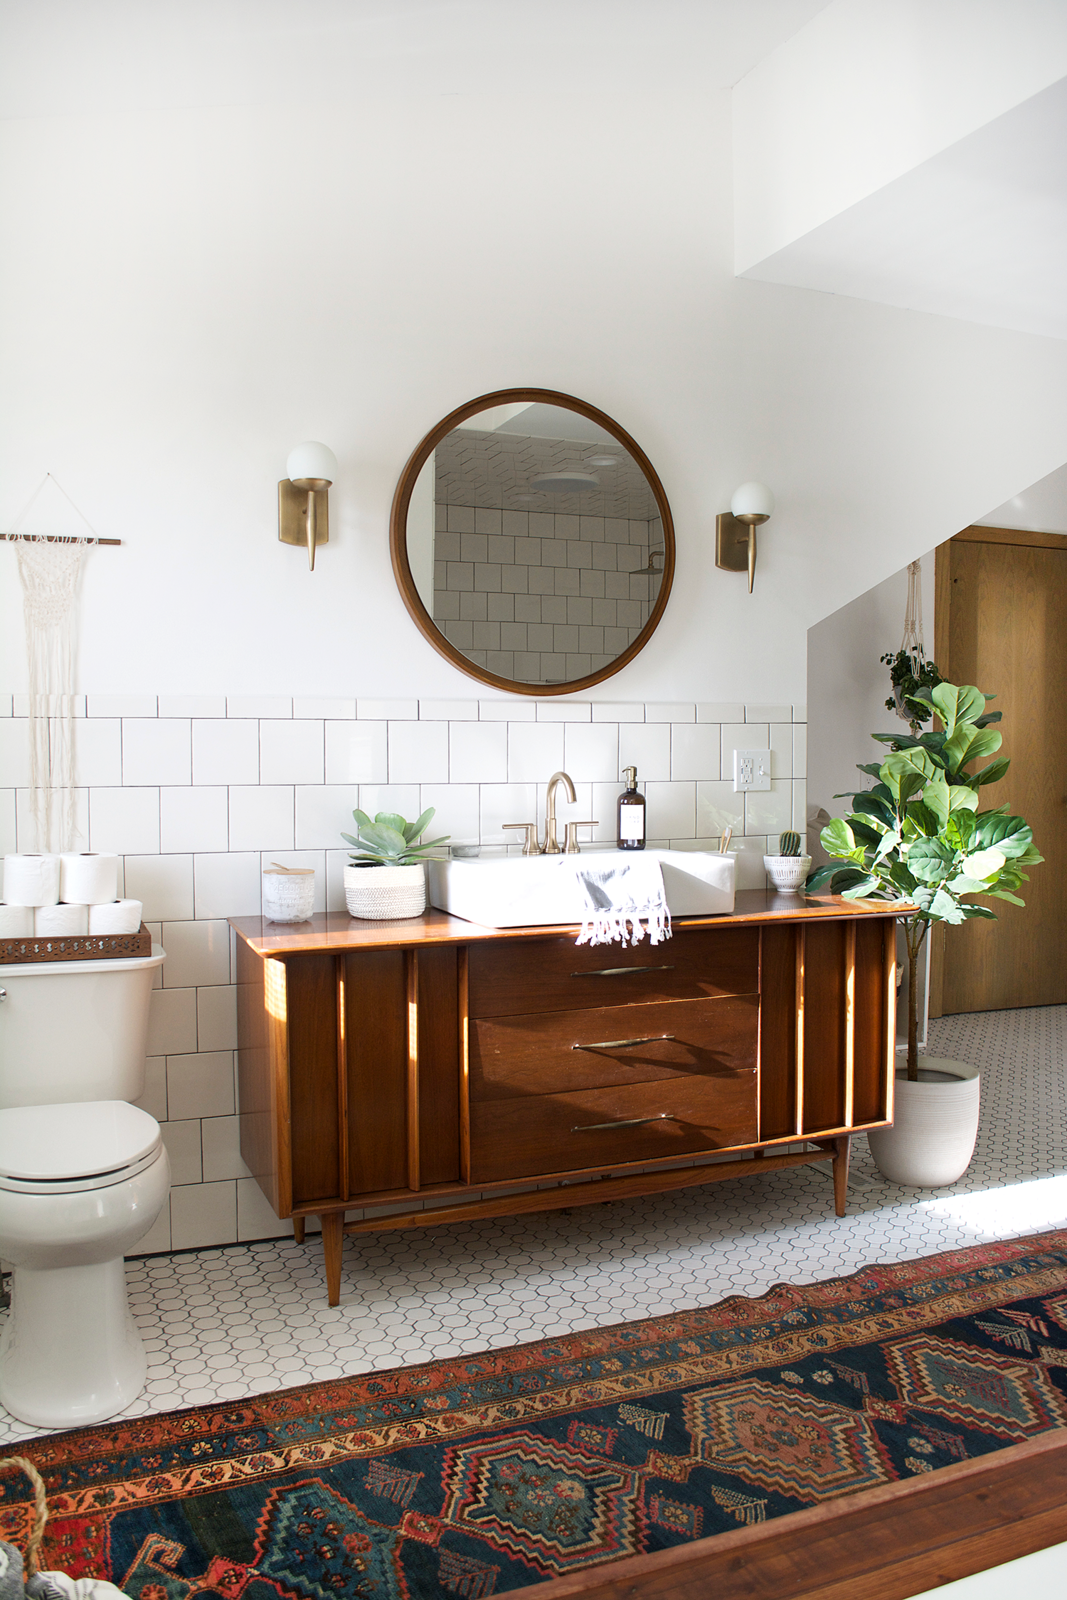 Before & After: An Outdated Bathroom Gets A Complete